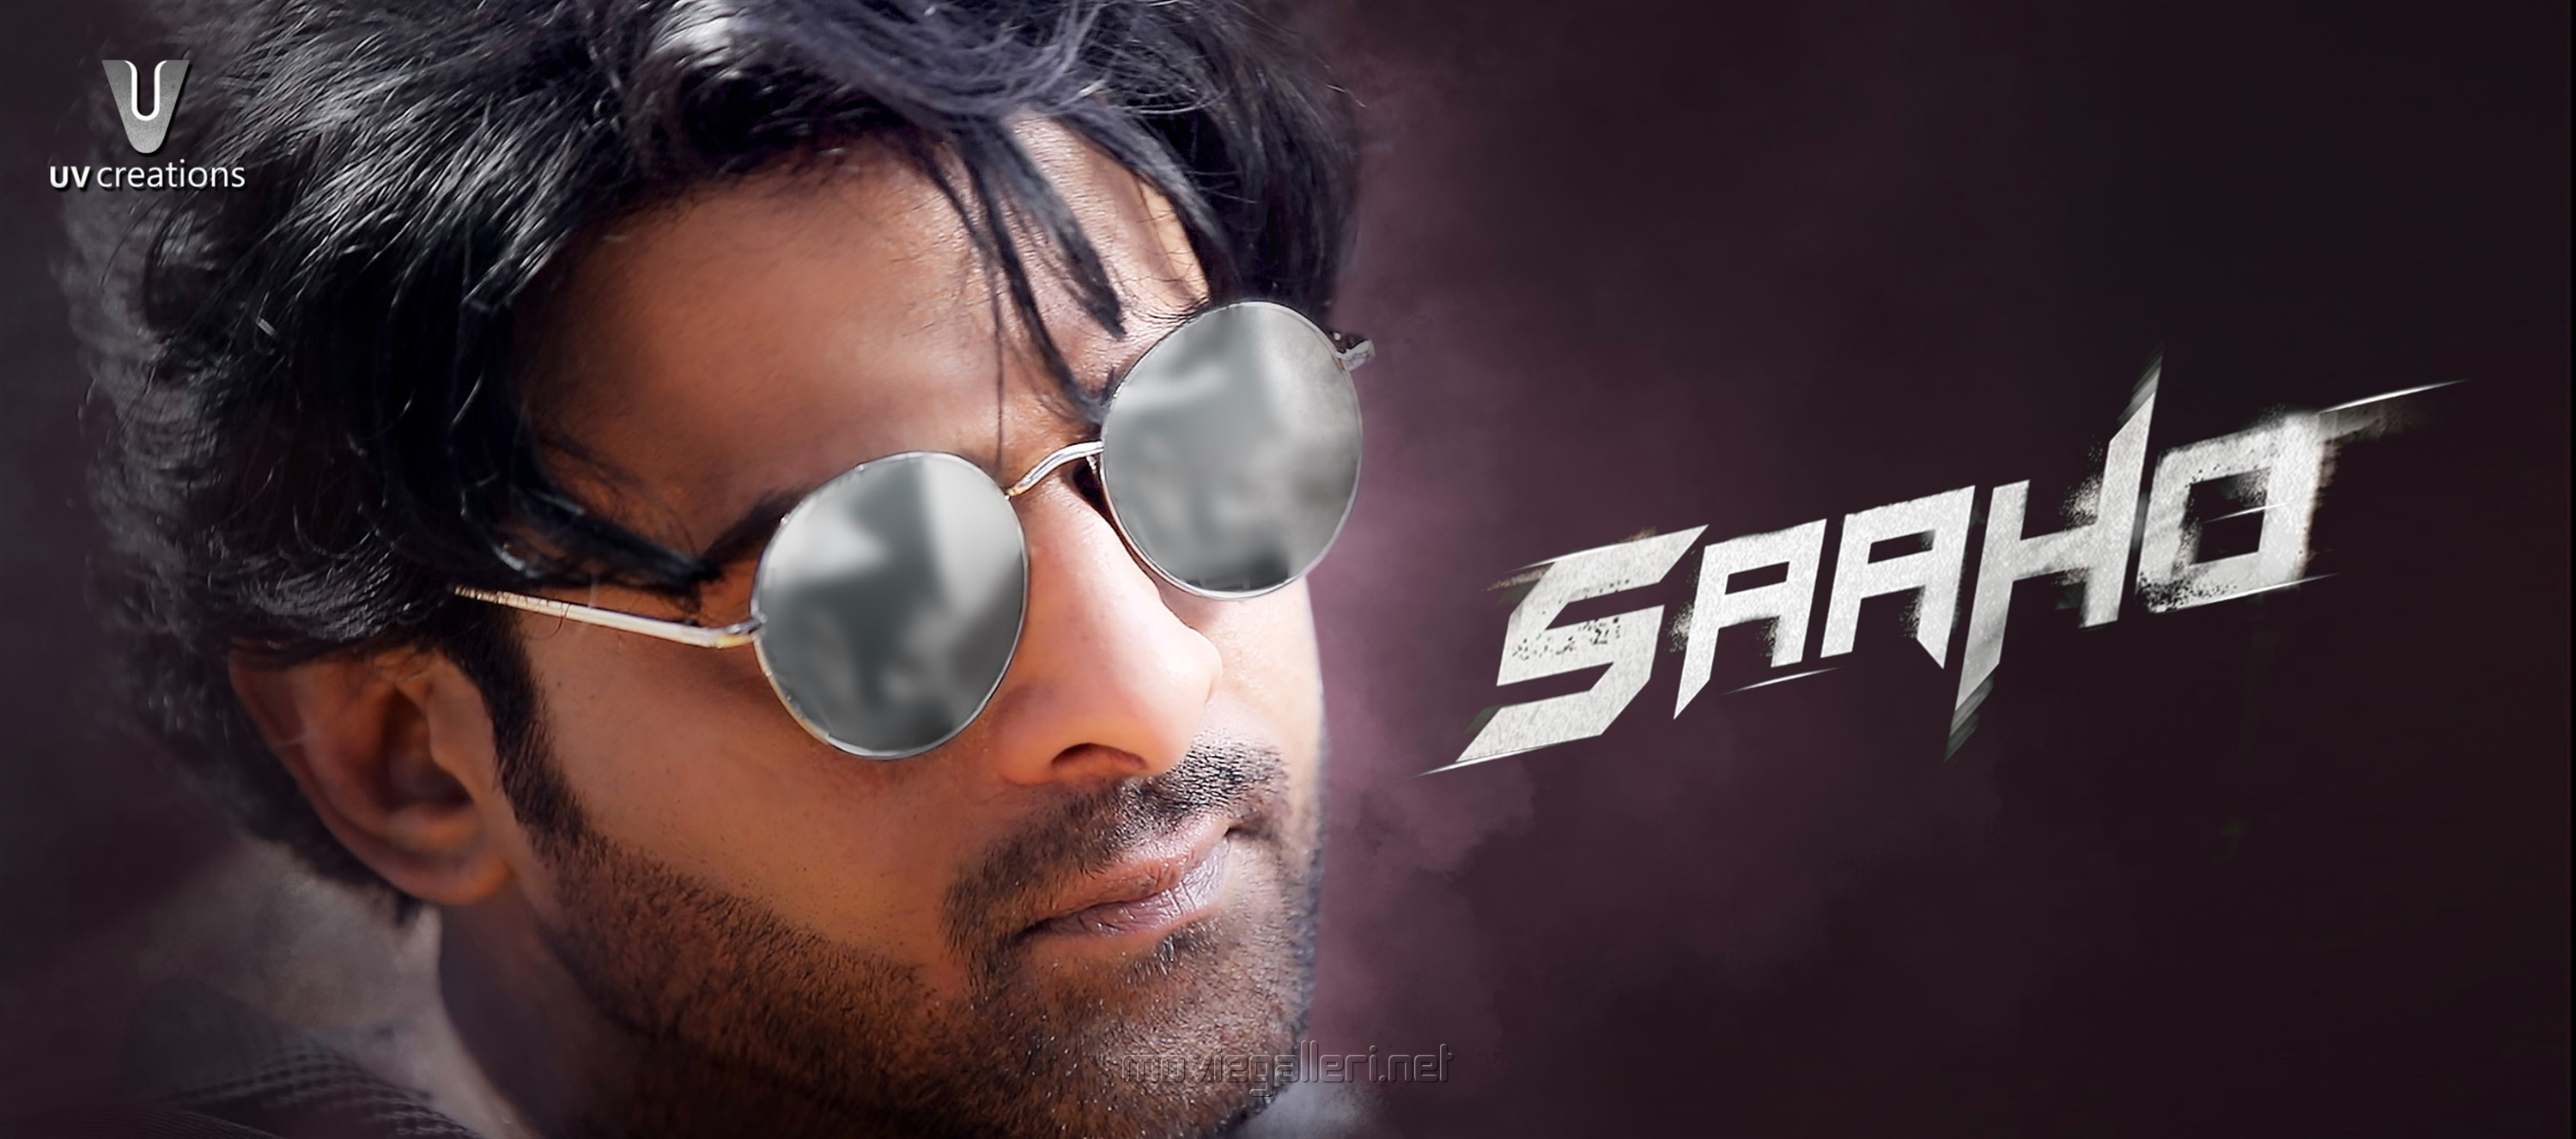 Chapter 2 of Shades of Saaho Prabhas